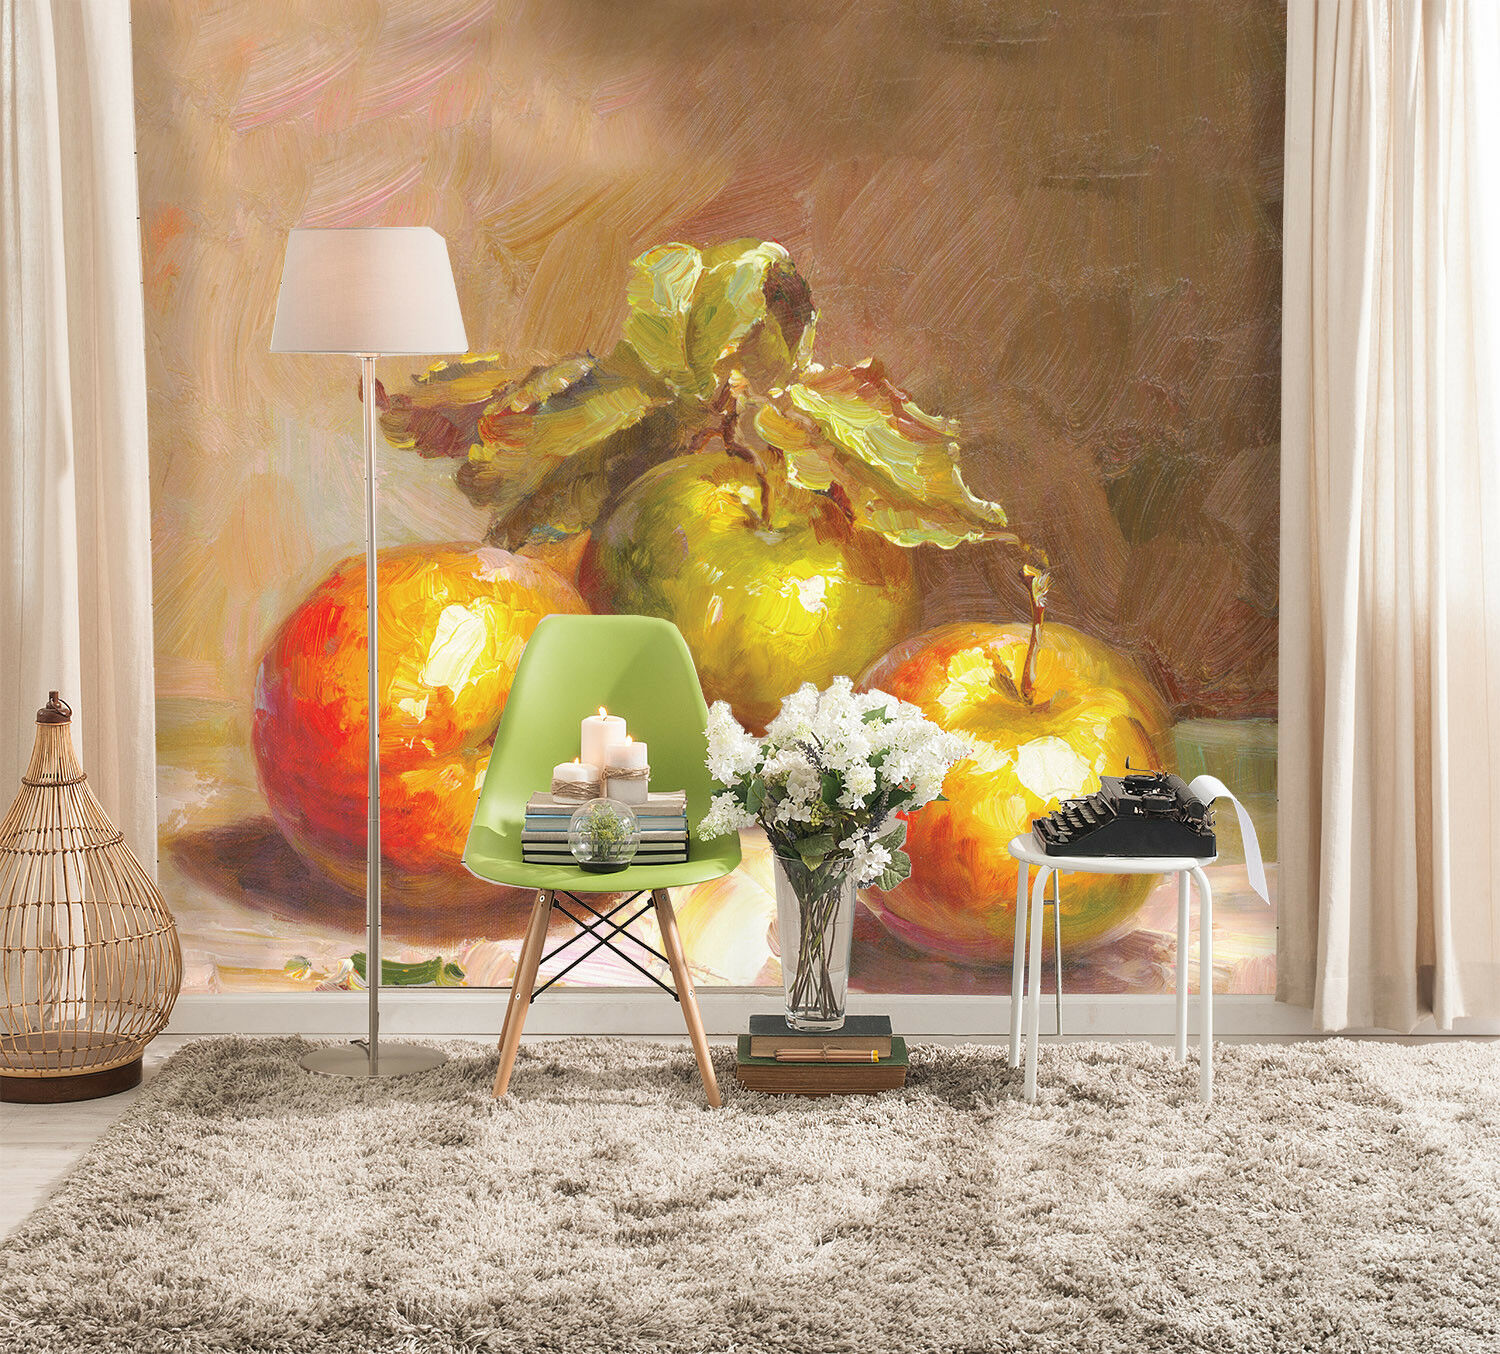 3D Apple Paint 737 Wallpaper Mural Paper Wall Print Wallpaper Murals UK Lemon